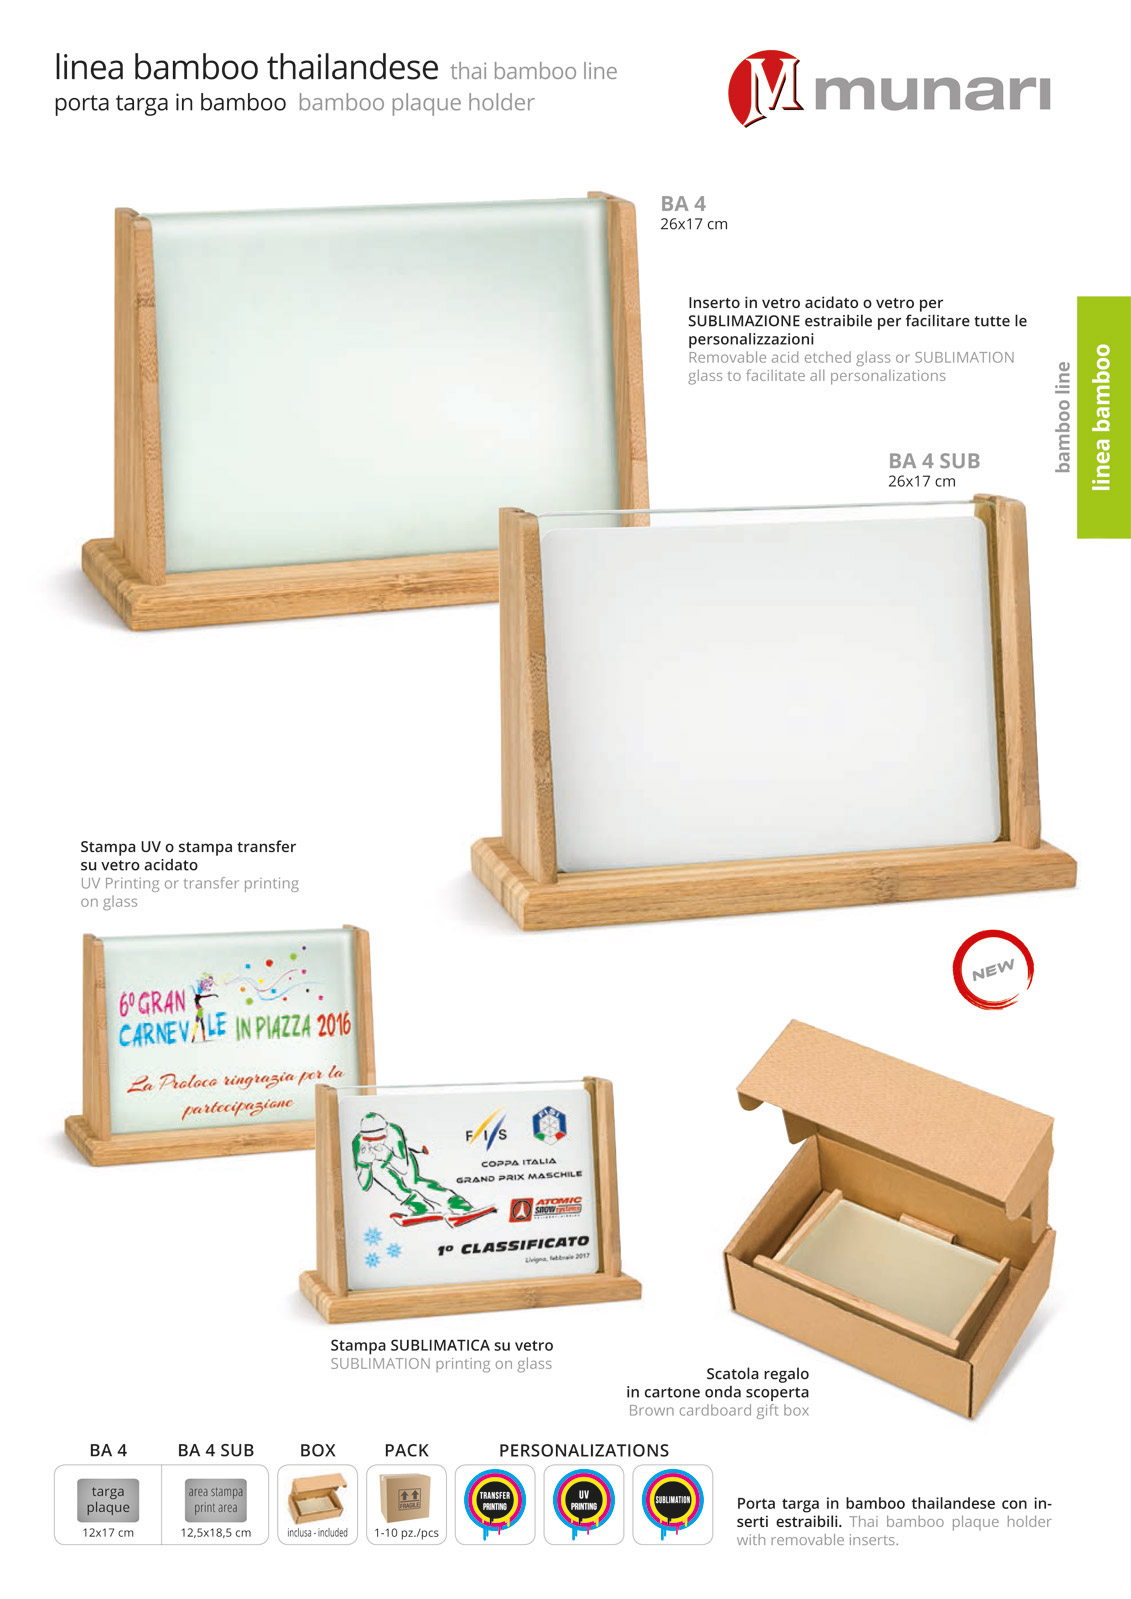 Bamboo plaque holder with sublimation glass BA 4 SUB